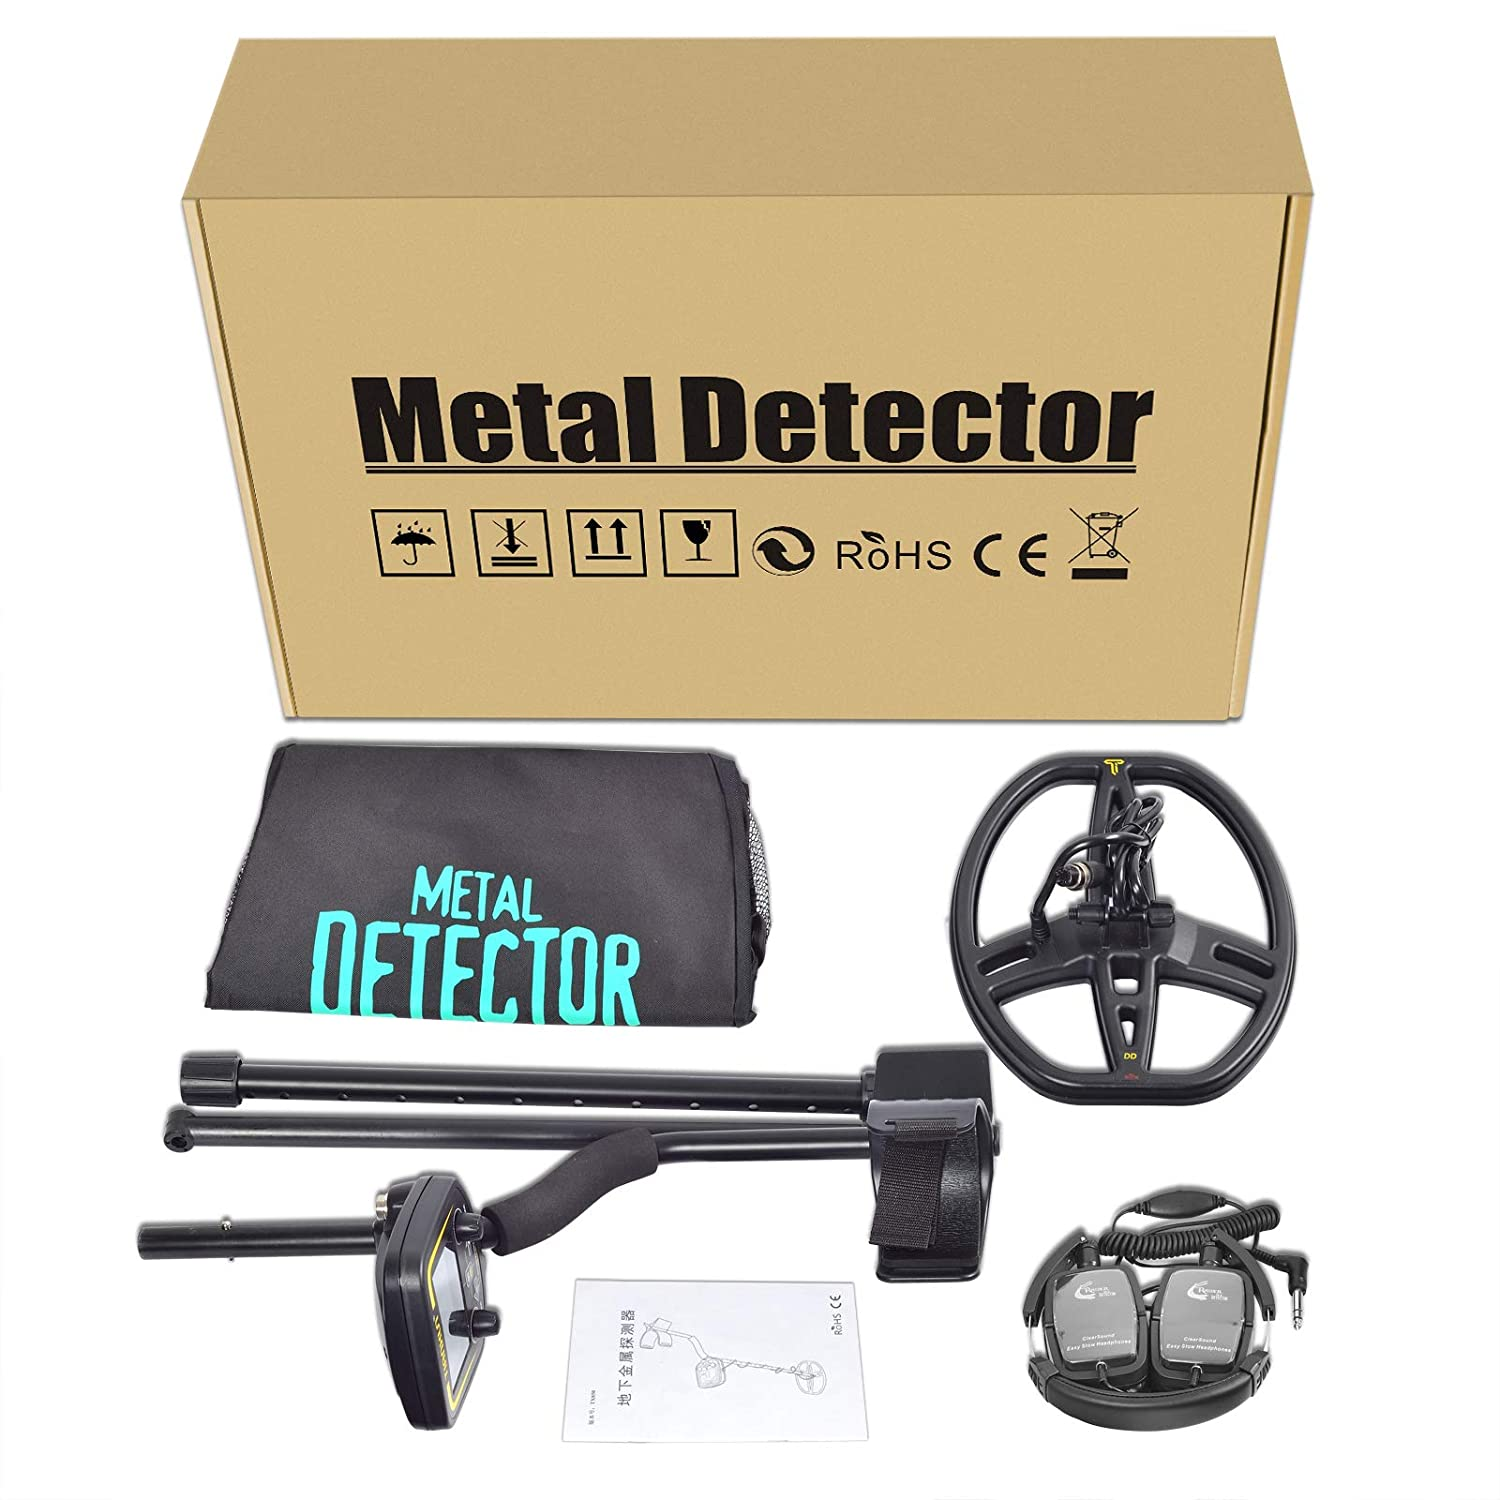 Amazon.com : Professional Metal Detector, High Sensitivity Metal Finder with LCD Display, Discrimination Mode, Distinctive Audio Prompt - Depth2.5m Scanner ...